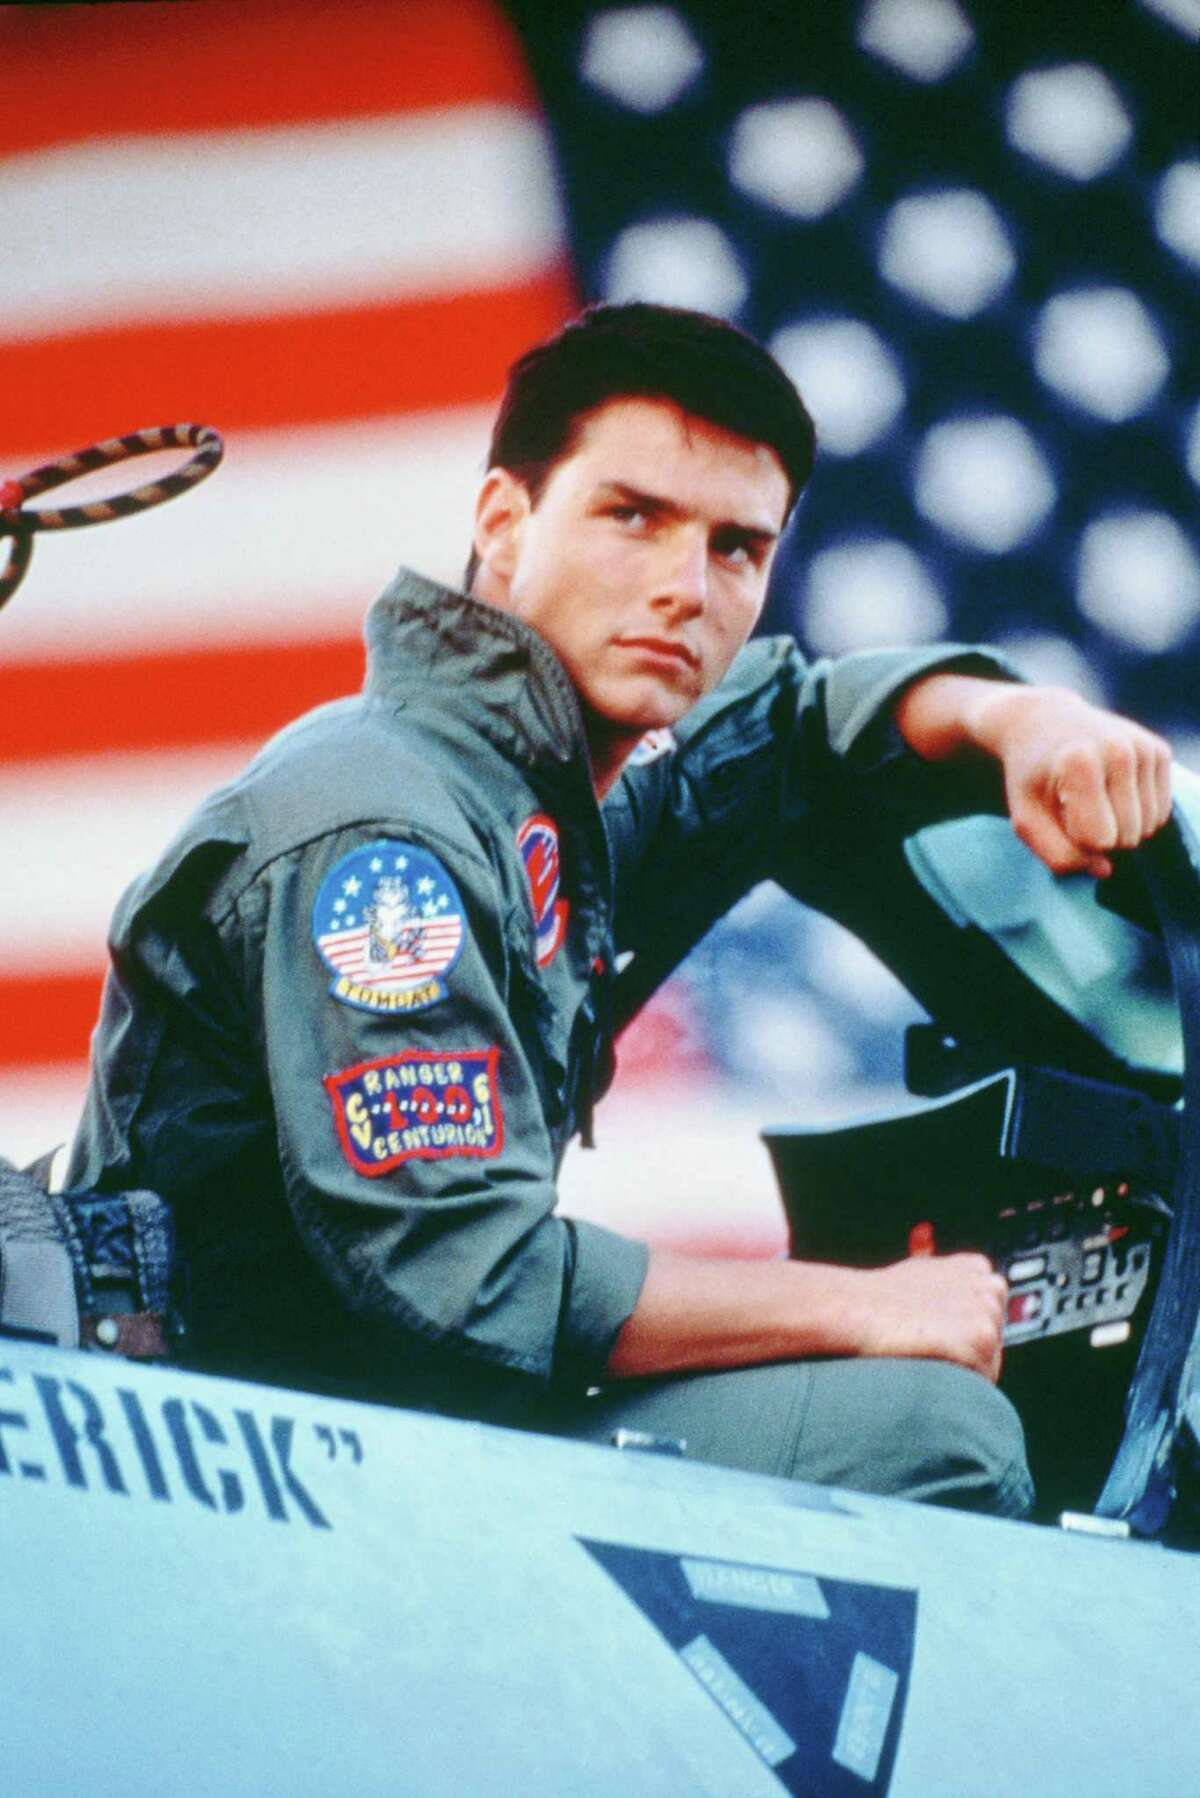 """Top Gun Day was initially intended by its founders to fall on May 16, the anniversary of the 1986 film's premiere date. However, so many promotional graphics were produced erroneously advertising the film holiday as being on the 13th that it was kept on that date to prevent confusion.The day is intended to be celebrated by adorning one's social media pages with everything Top Gun and quoting the movie all day. Kinda like """"Talk Like a Pirate Day."""" But with more testosterone."""